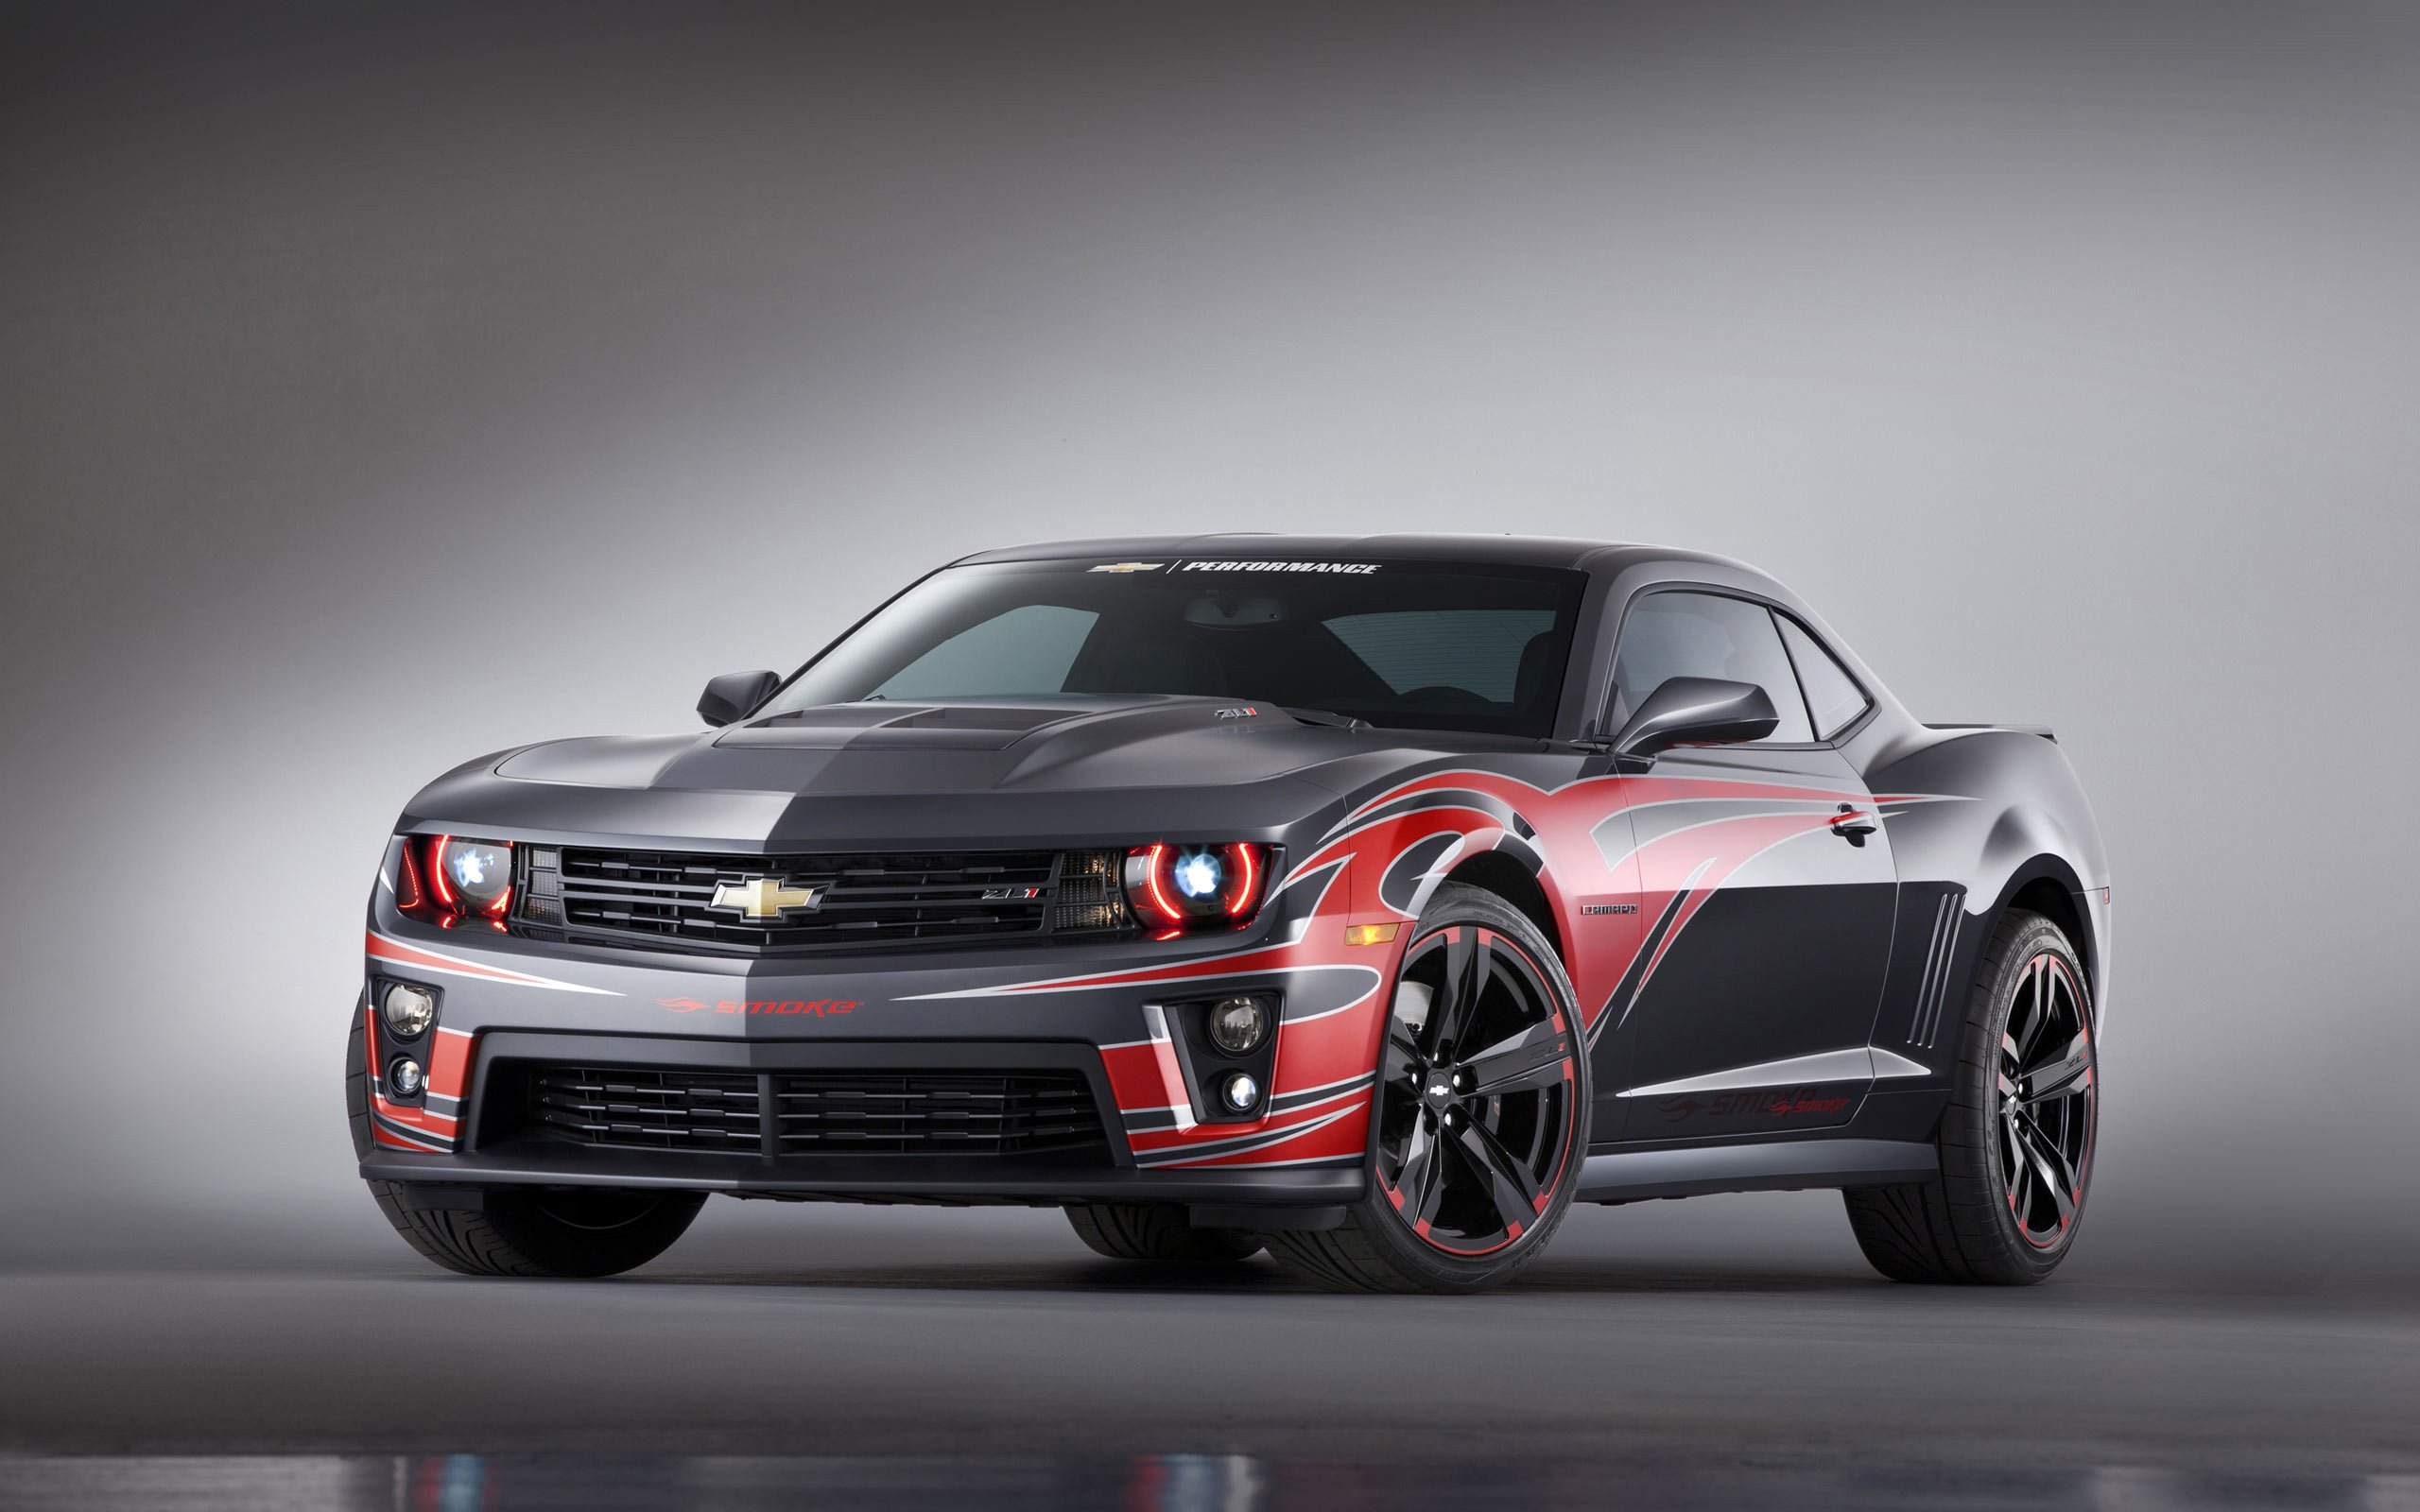 2012 Chevrolet Camaro ZL1 Wallpapers HD Wallpapers 2560x1600